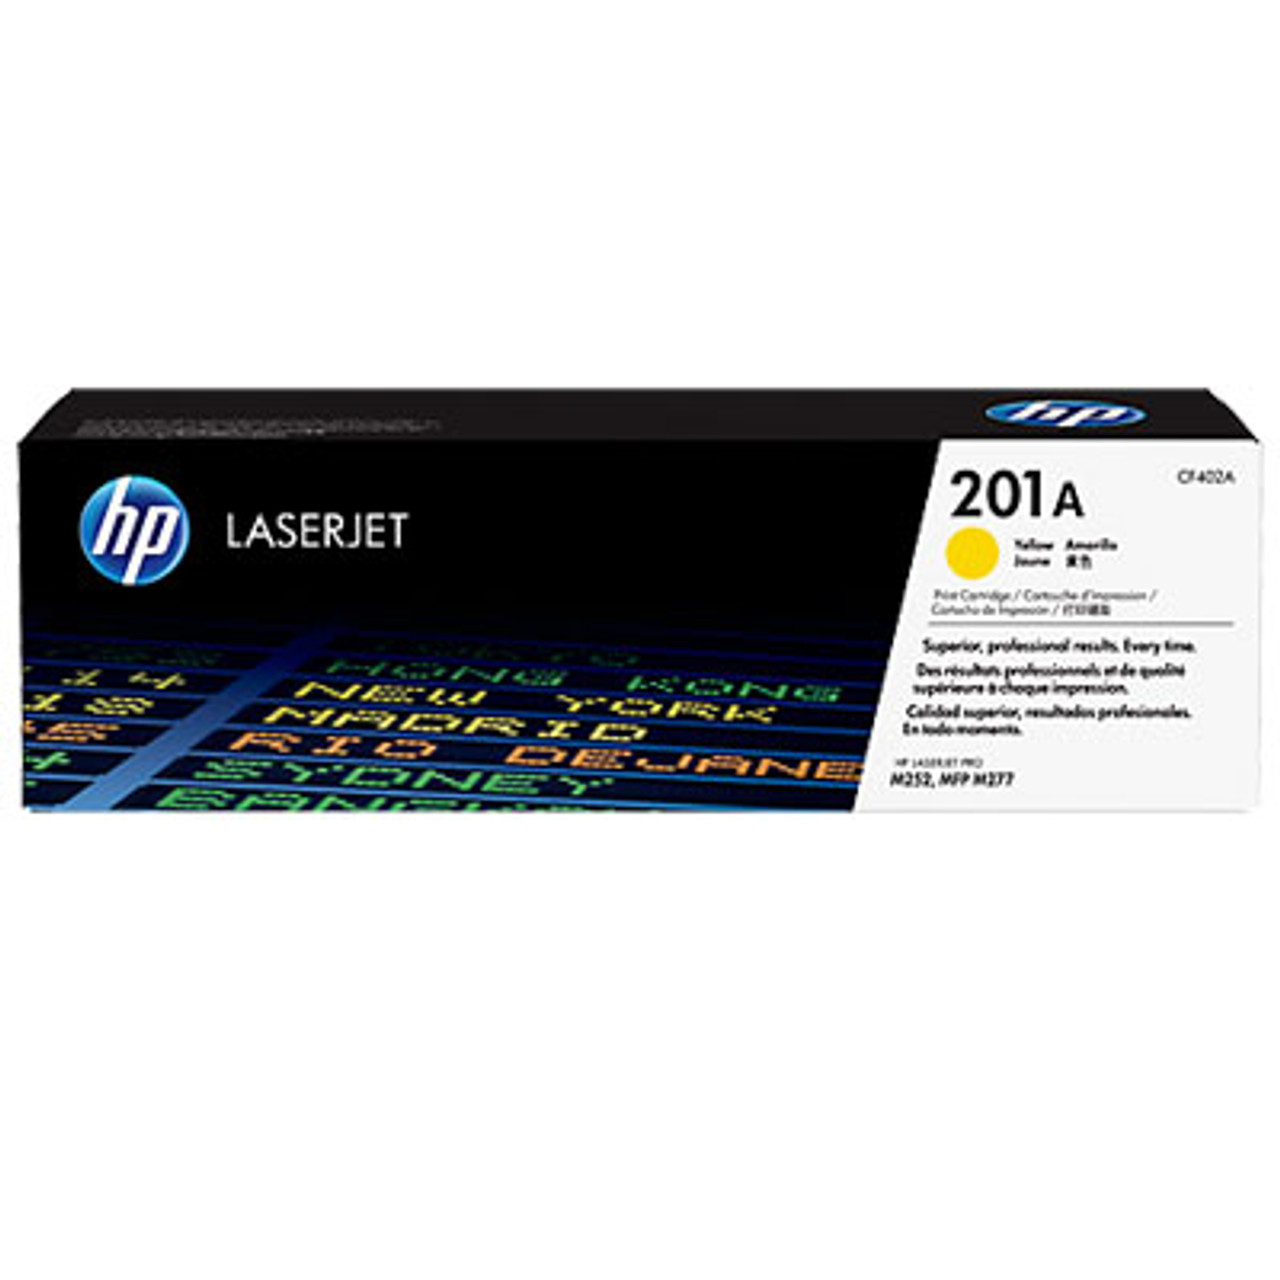 Image for HP #201A Yellow Toner CF402A 1,400 pages CX Computer Superstore